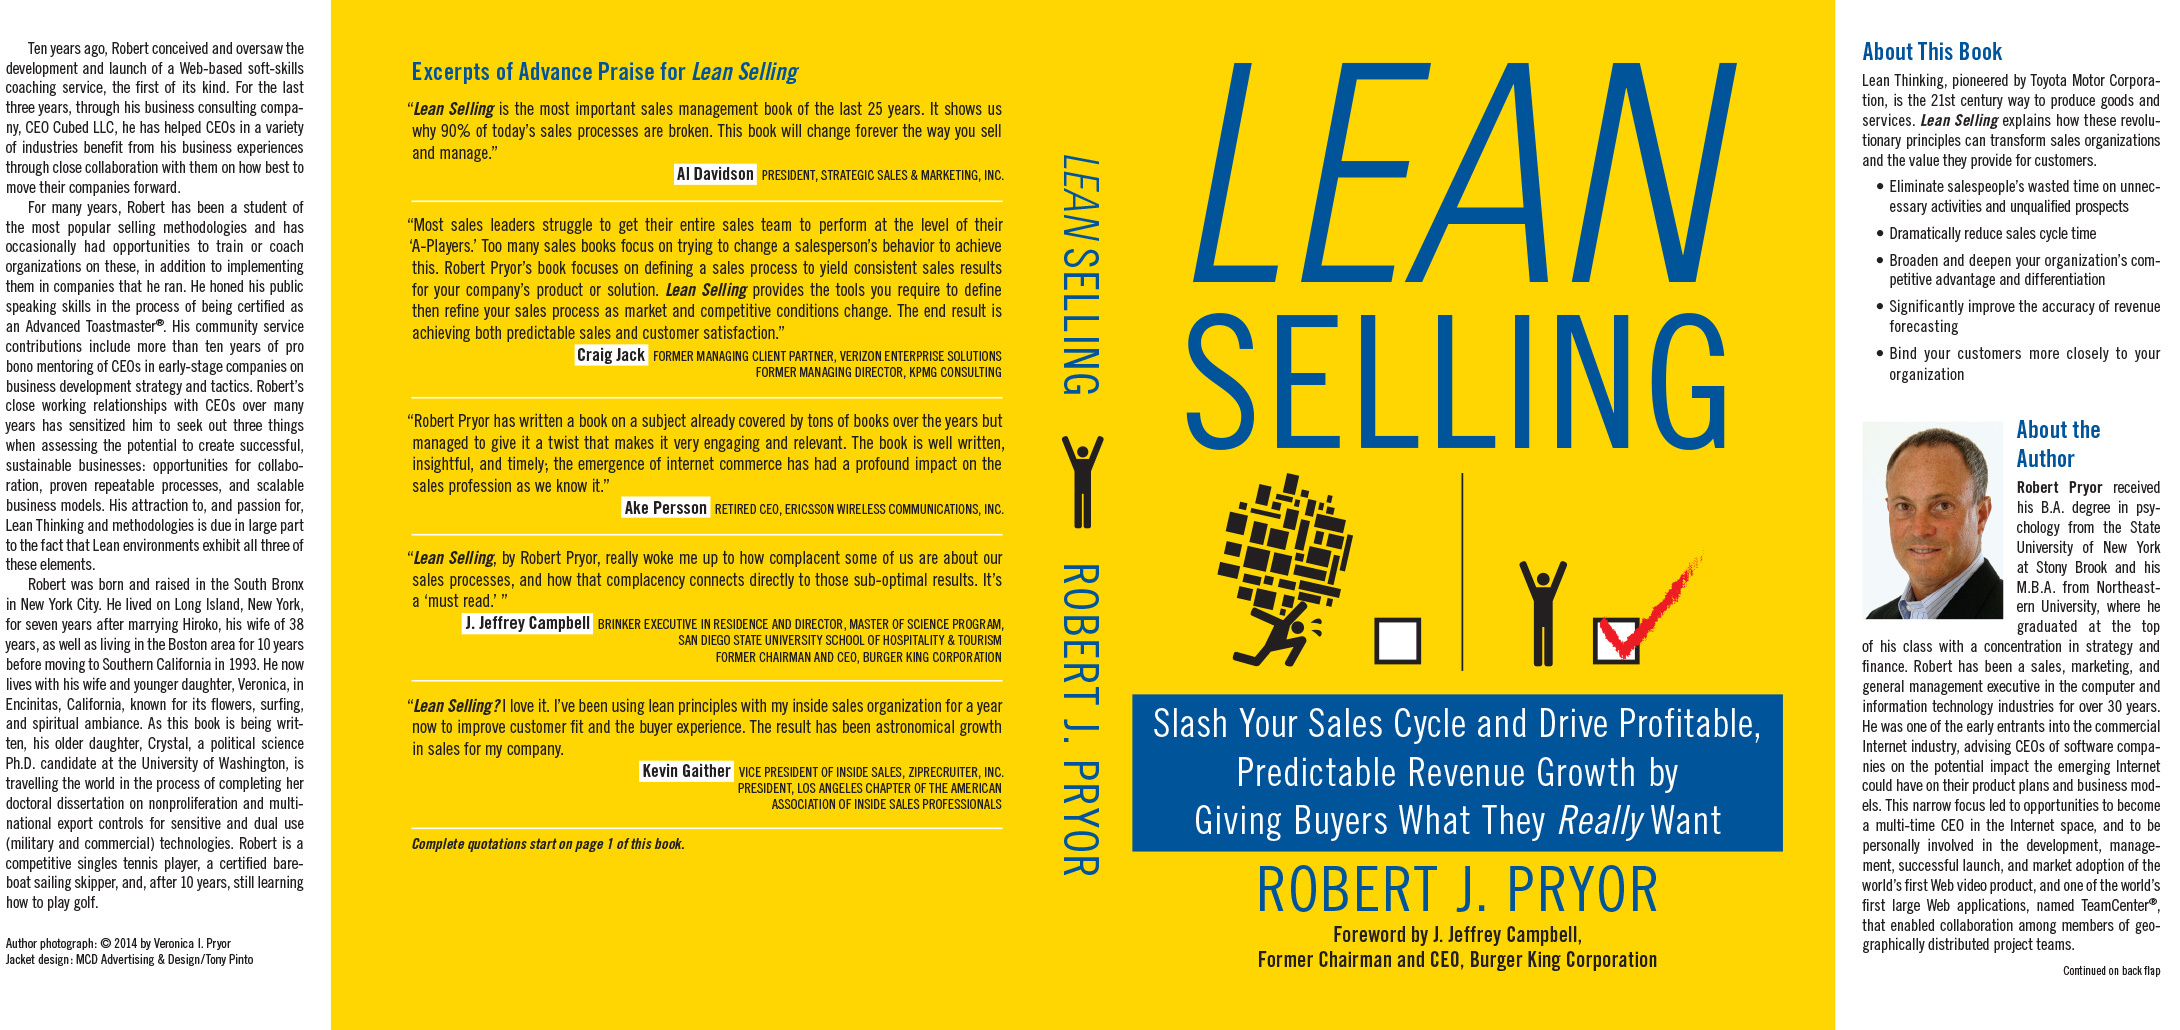 Lean Selling | Robert J. Pryor Dust Jacket